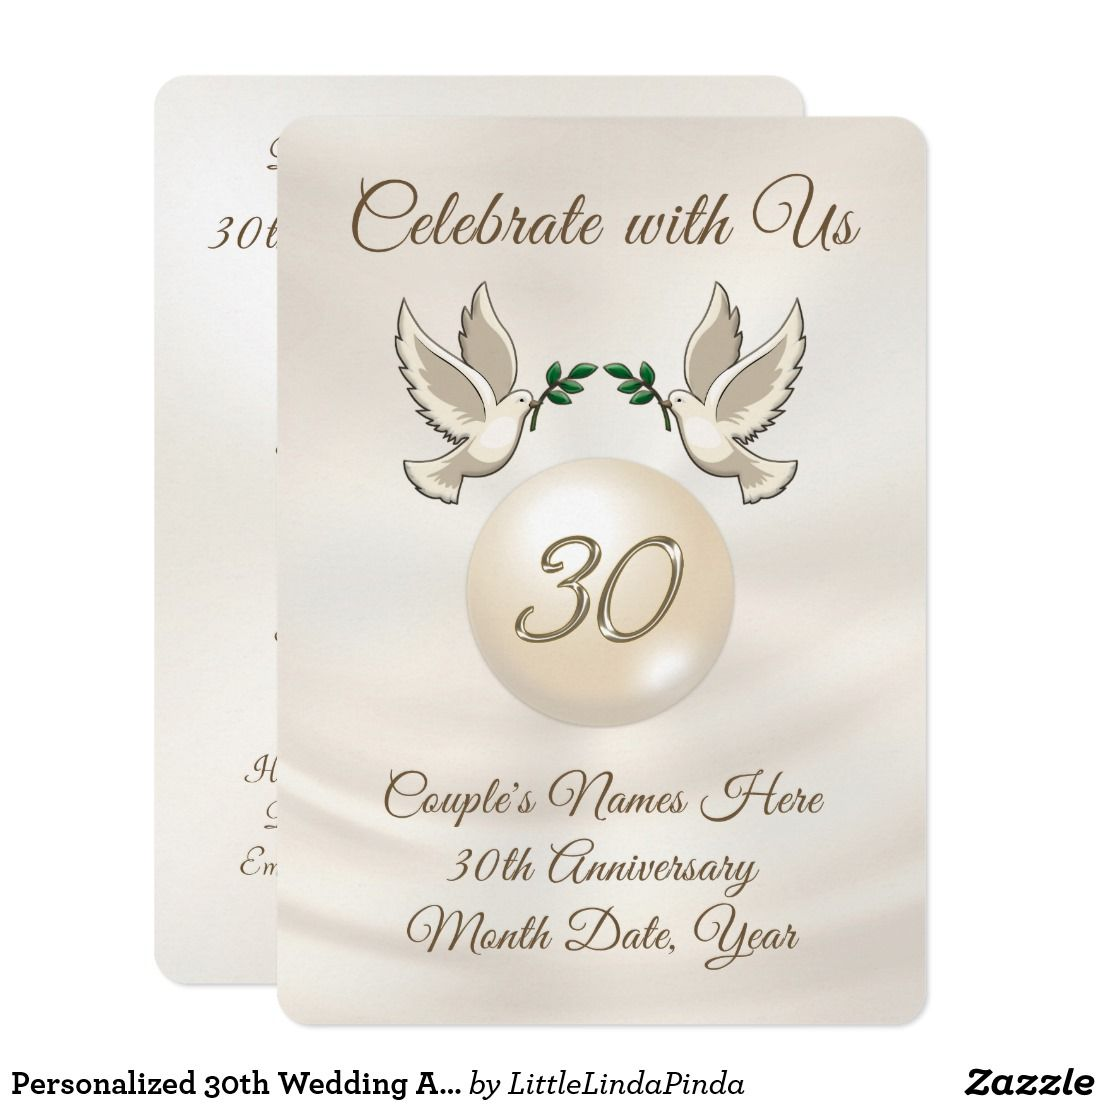 30th Anniversary Symbol Images - meaning of this symbol